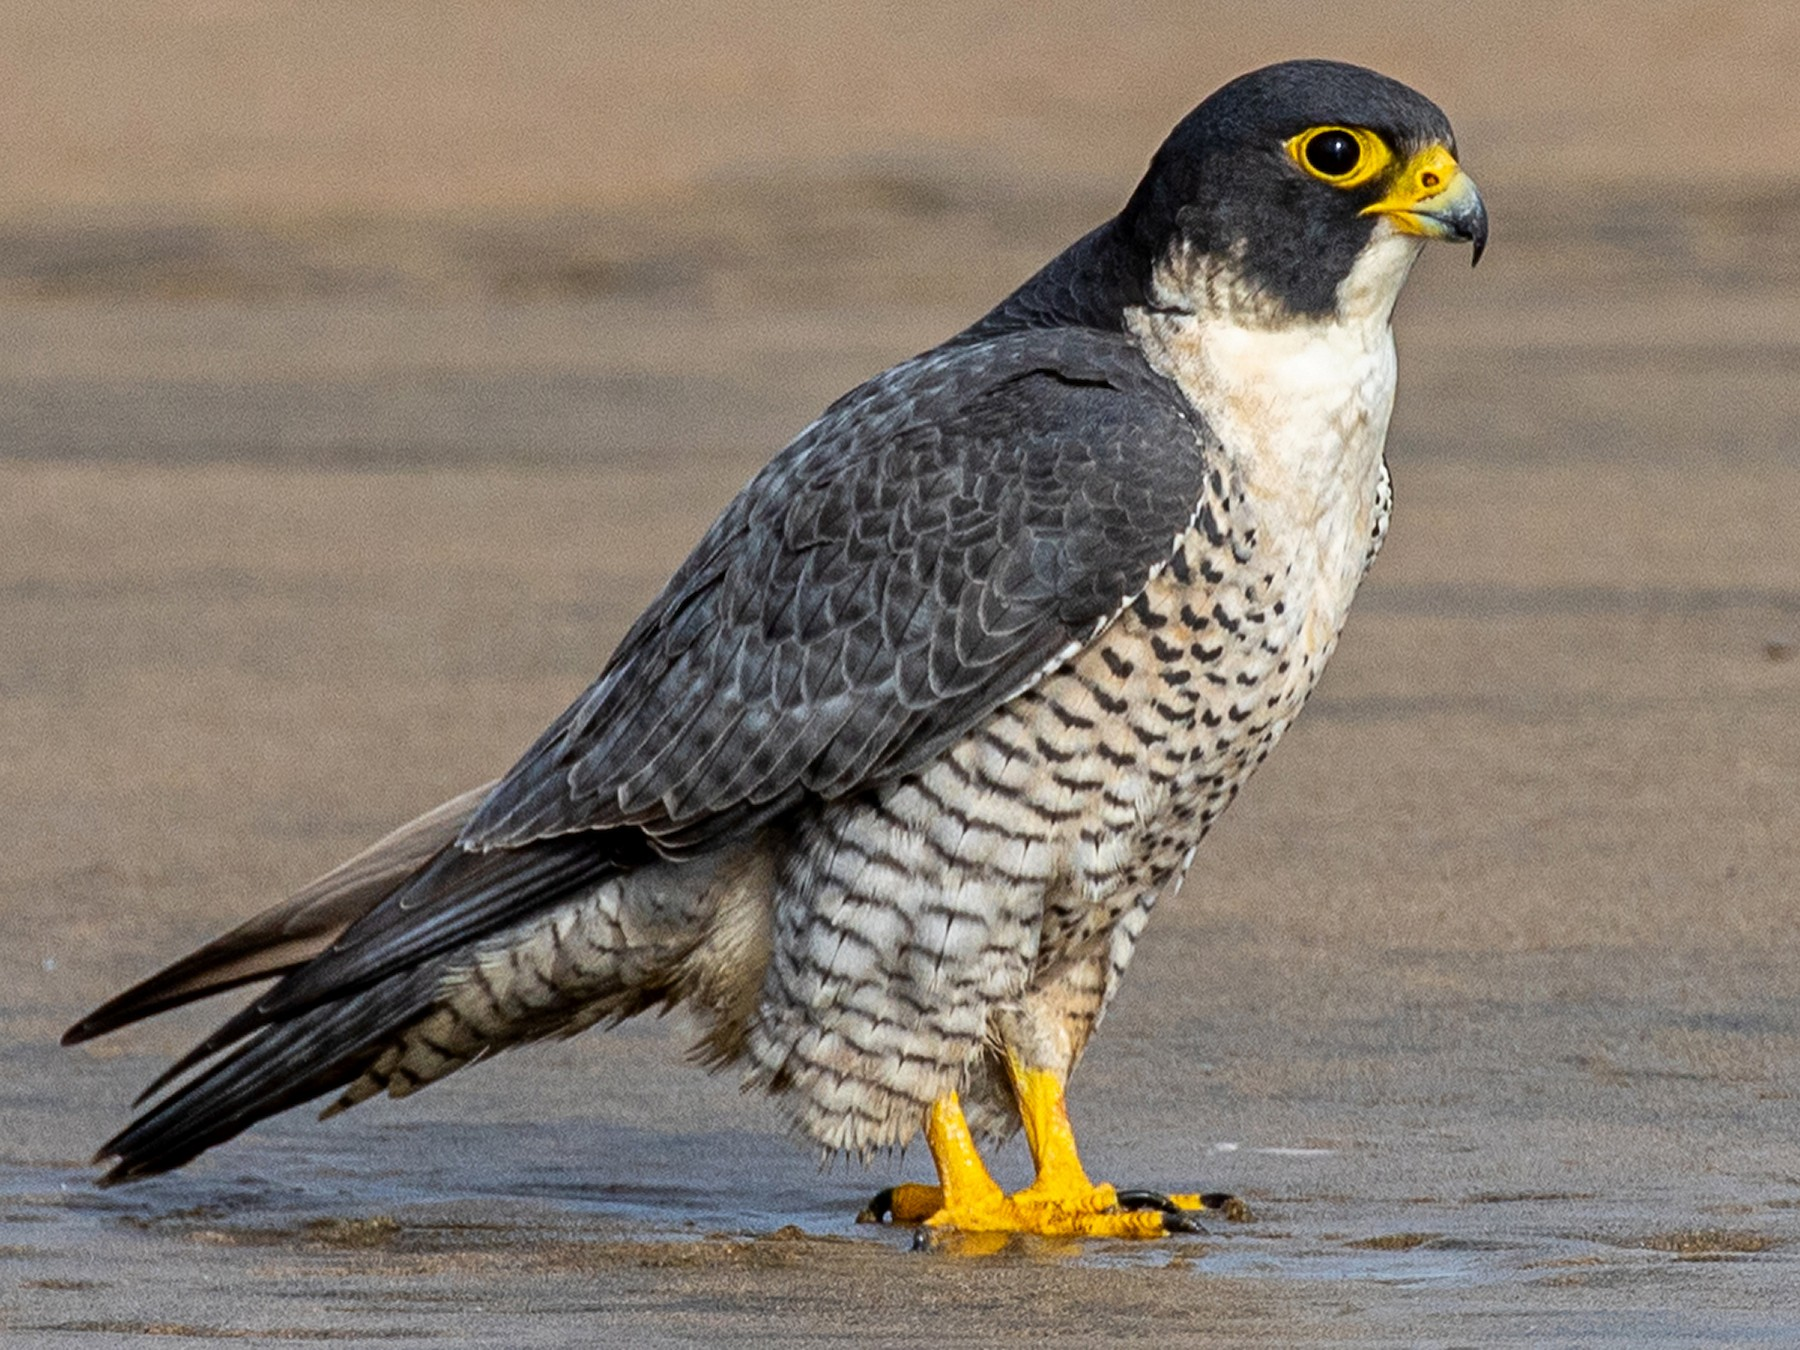 Peregrine Falcon - Joshua Stacy